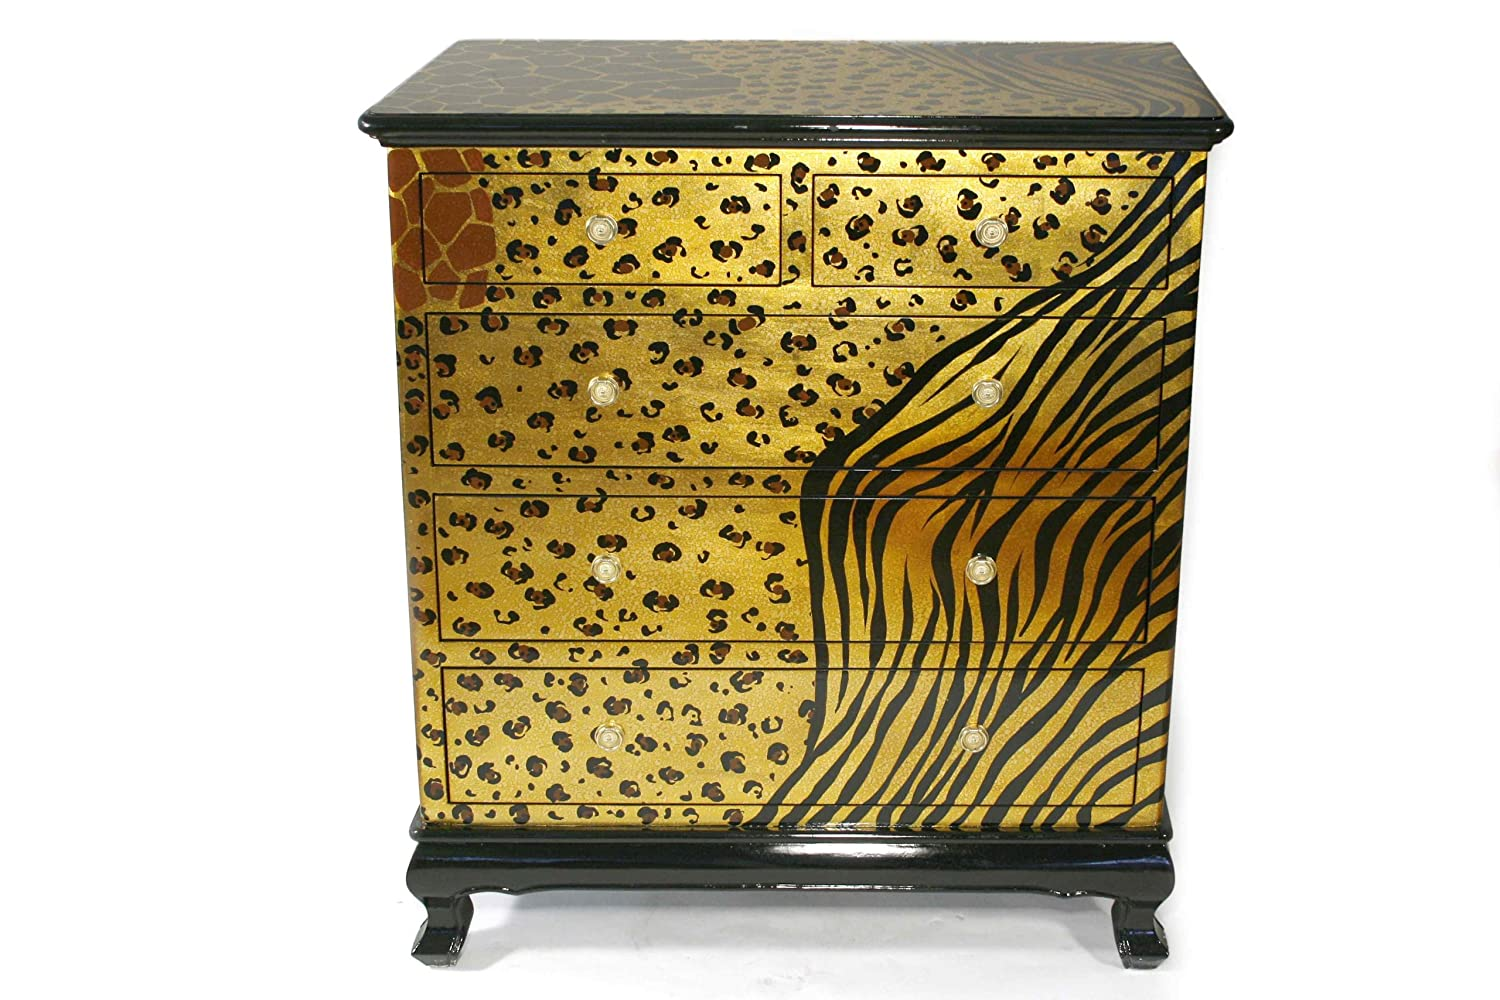 Casa Collection / Art for living by Jänig 08135 Exclusive Kommode mit 5 Schubfächern, 107 x 95 x 45 cm, Motiv Leopard, Griffe in kristallglasoptik